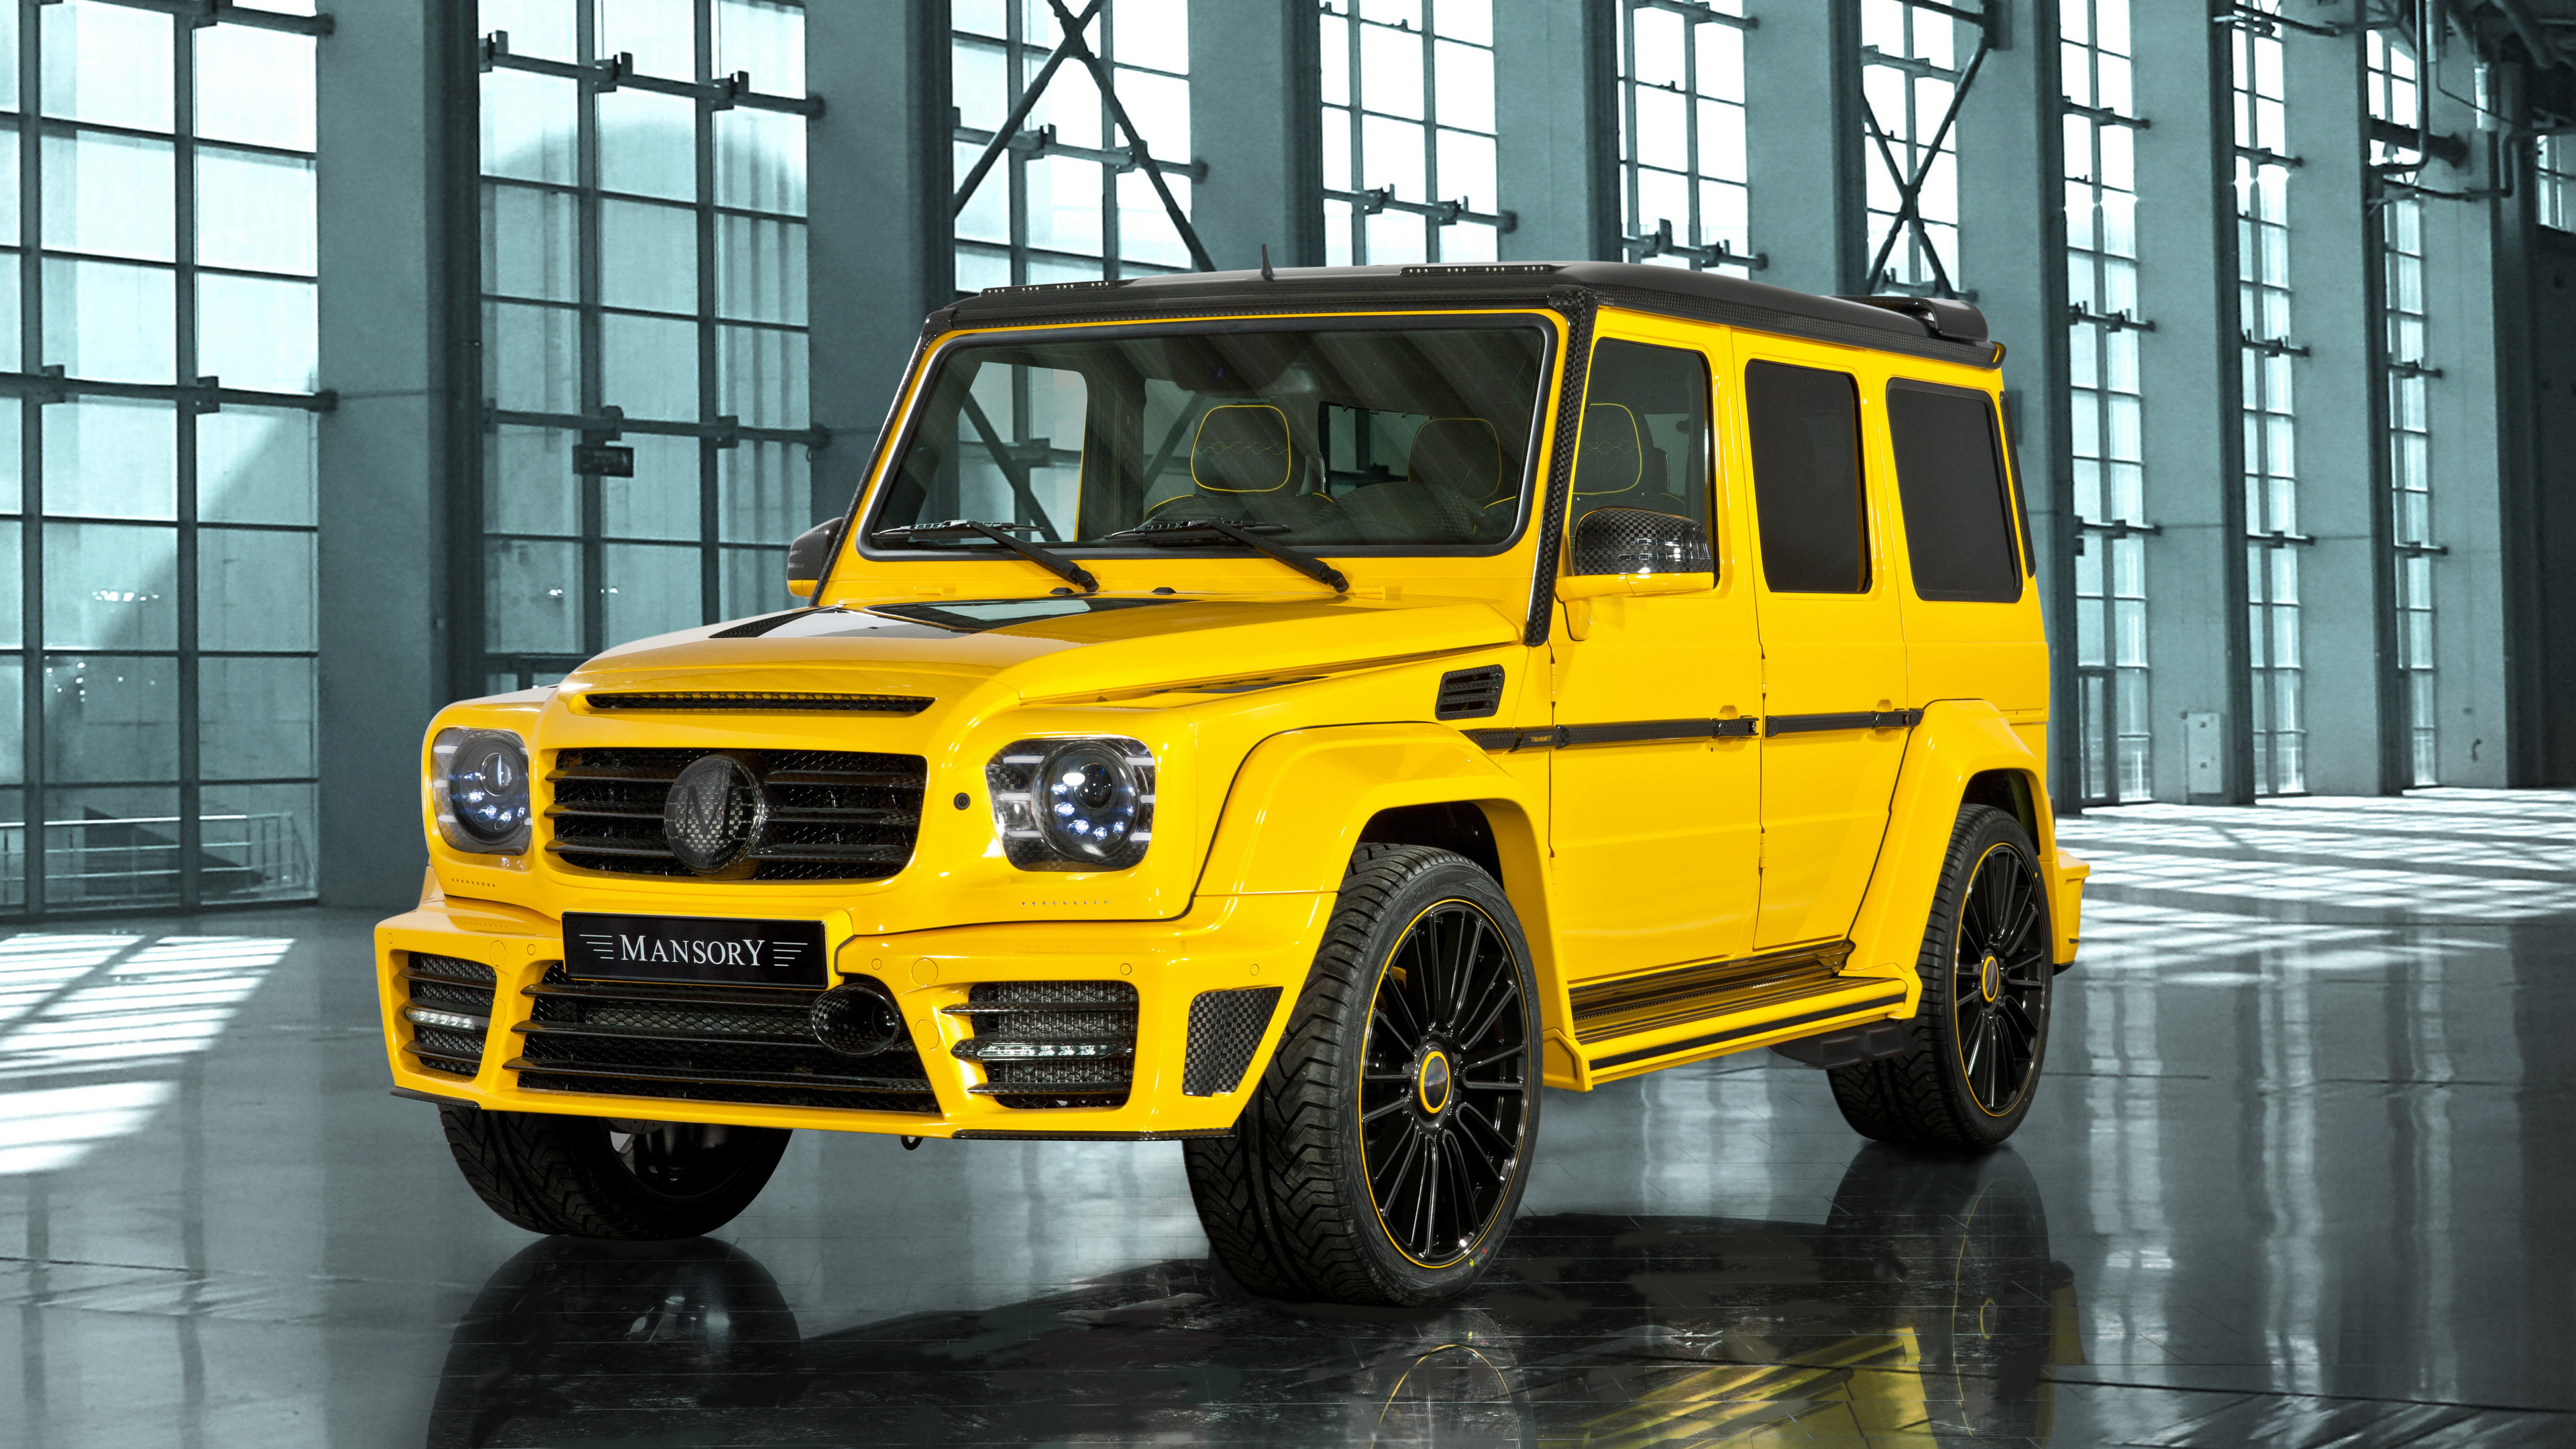 mercedes benz mansory gronos 1539108552 - Mercedes Benz Mansory Gronos - suv wallpapers, mercedes wallpapers, mercedes g class wallpapers, mercedes benz wallpapers, mansory wallpapers, hd-wallpapers, cars wallpapers, 4k-wallpapers